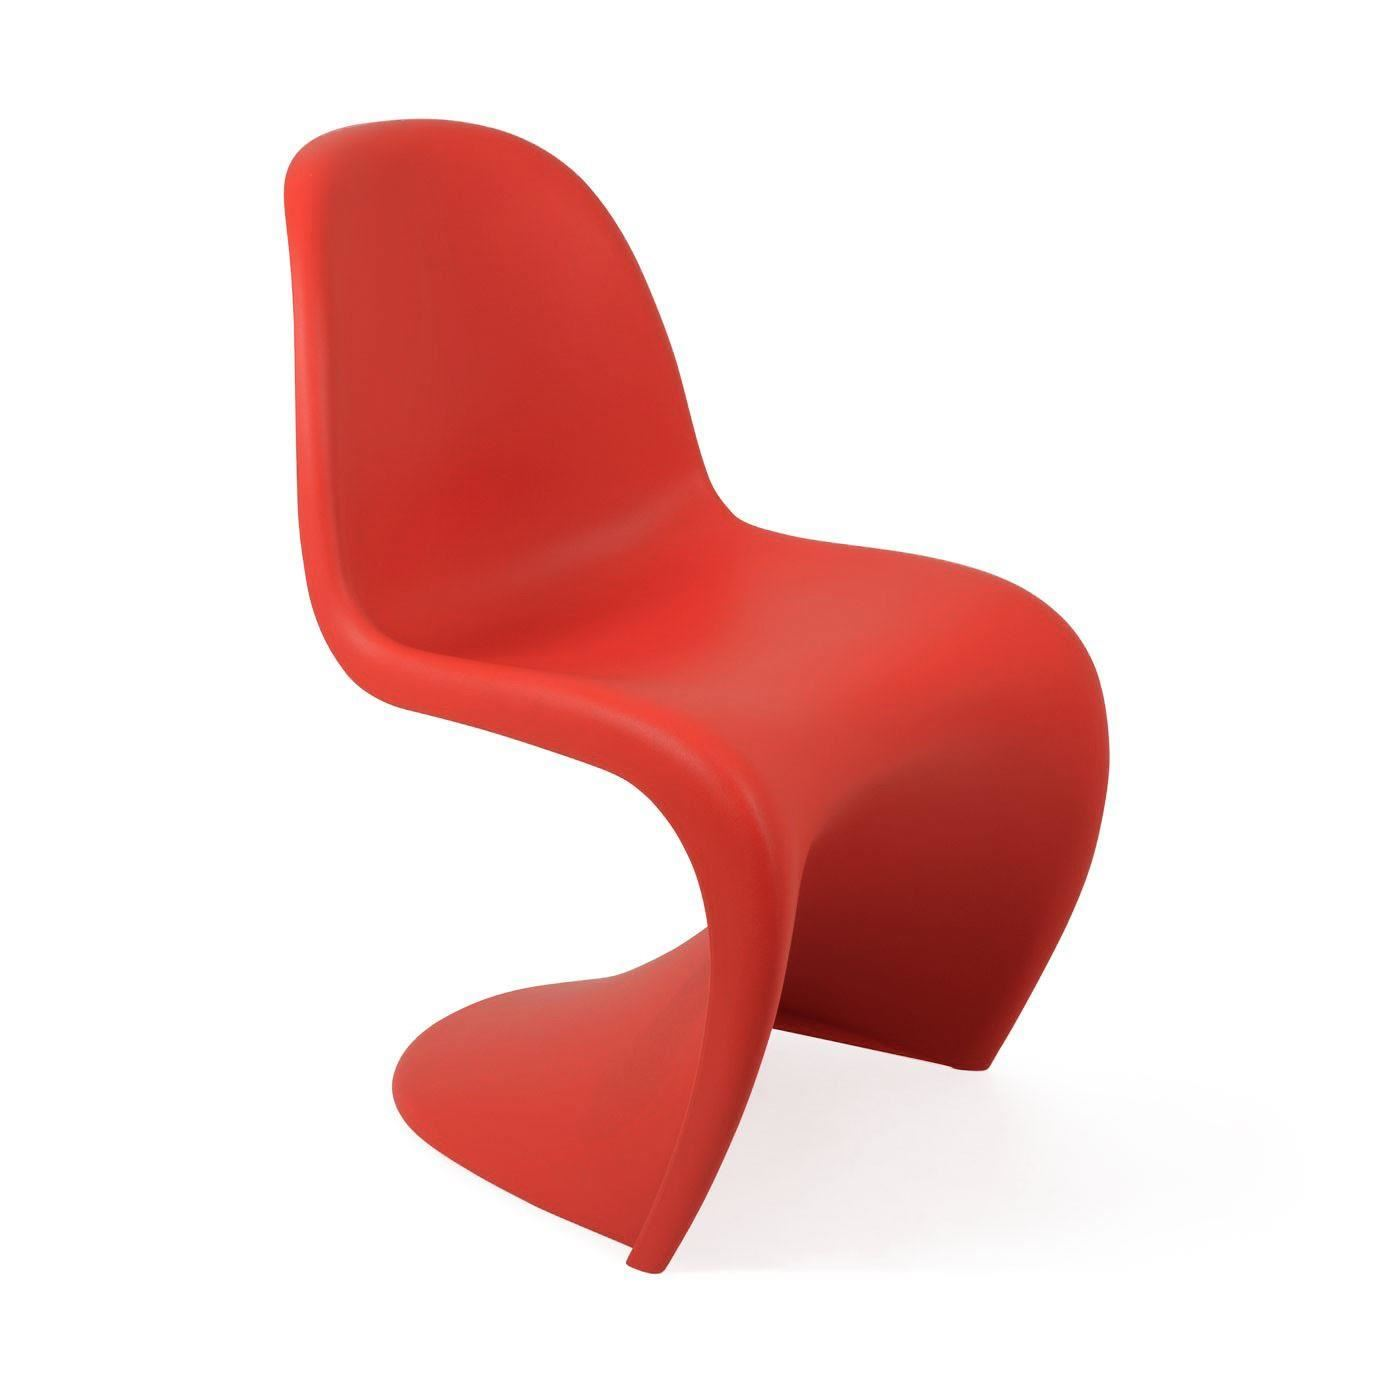 s chair replica with adjustable legs mmilo dinnig chairs inspired modern contemporary